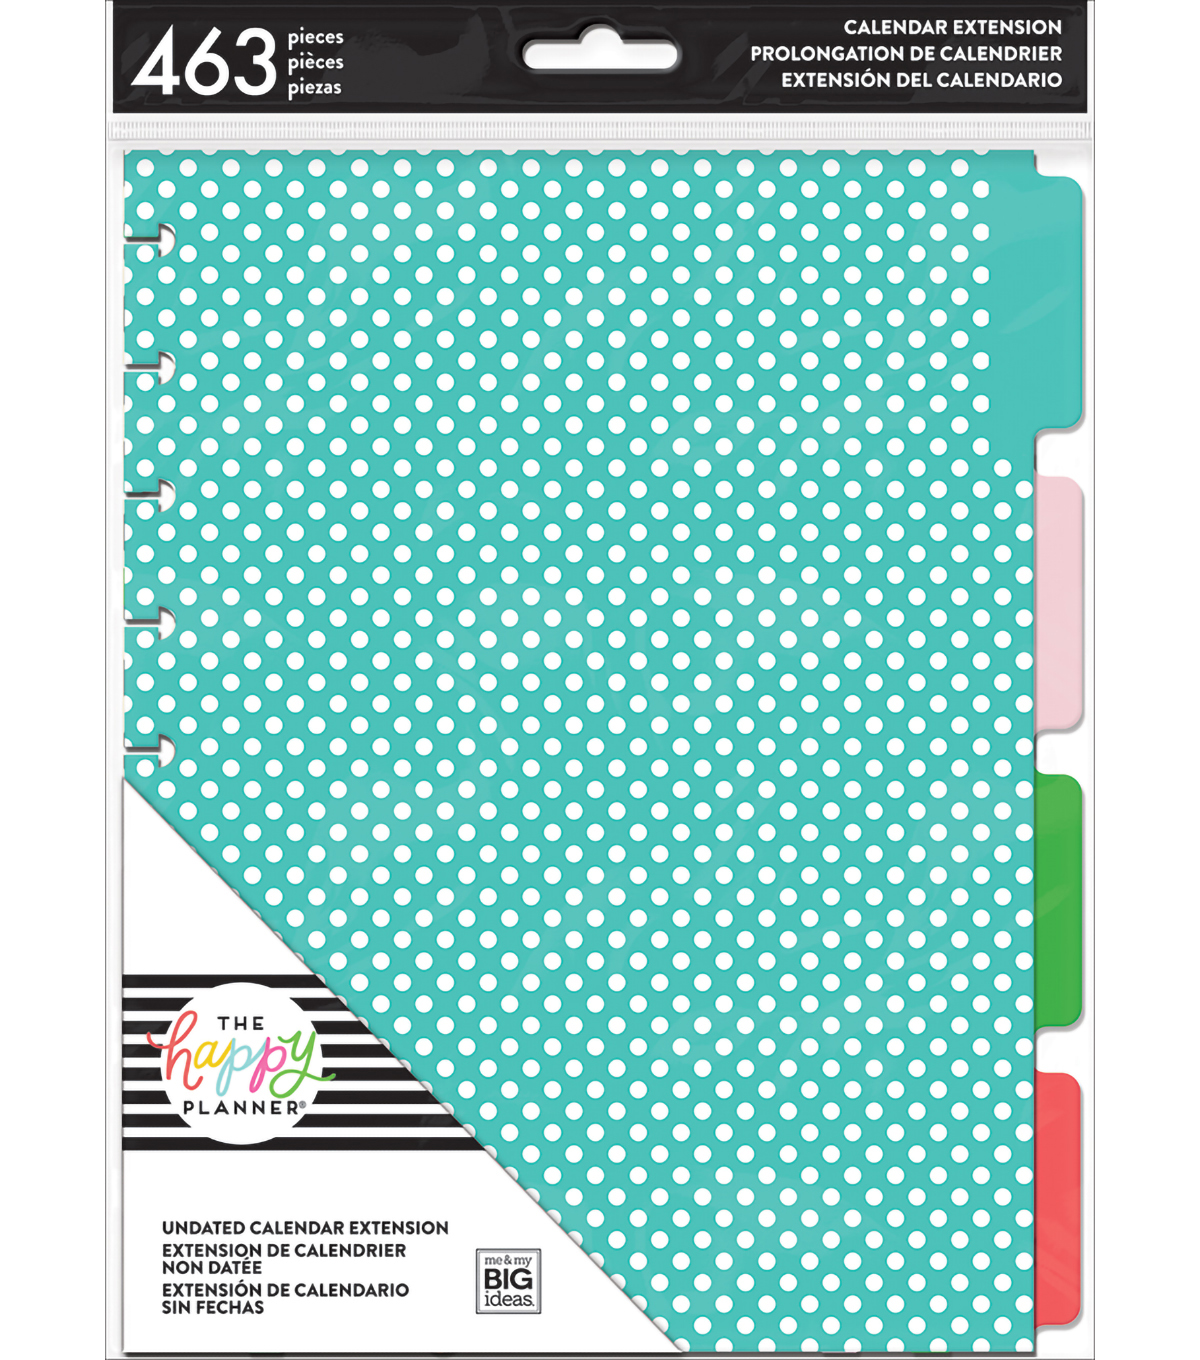 The Happy Planner Monthly Calendar Extension Classic              The Happy Planner Monthly Calendar Extension Classic by The Happy Planner